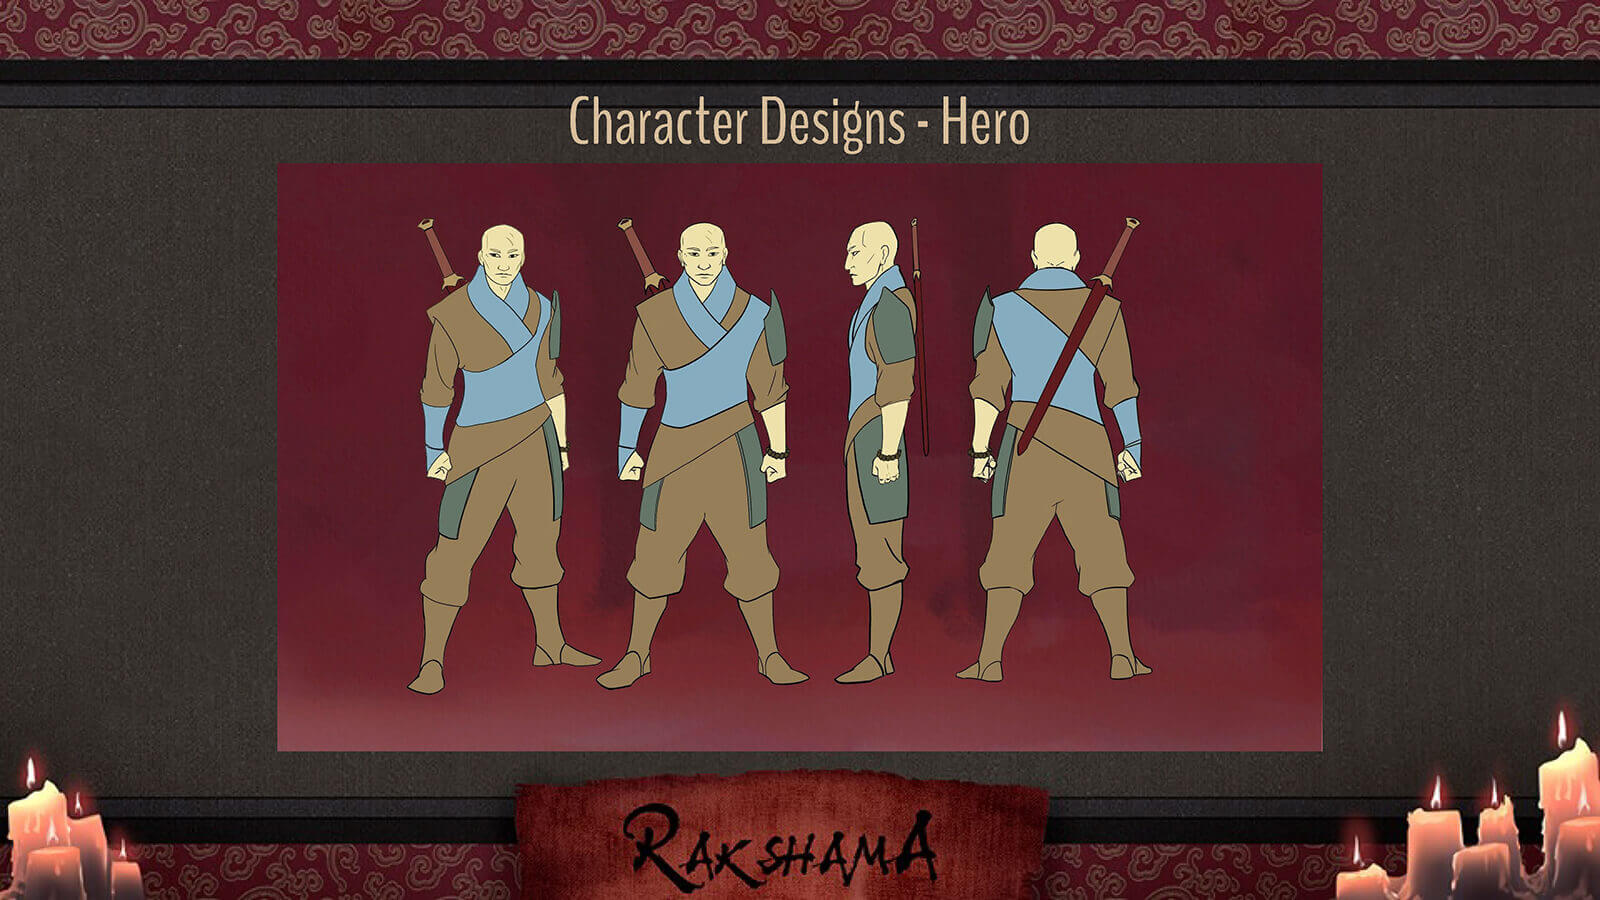 Character Design slide for the film Rakshama, depicting the Hero character, a warrior in a blue and brown clothing and sword